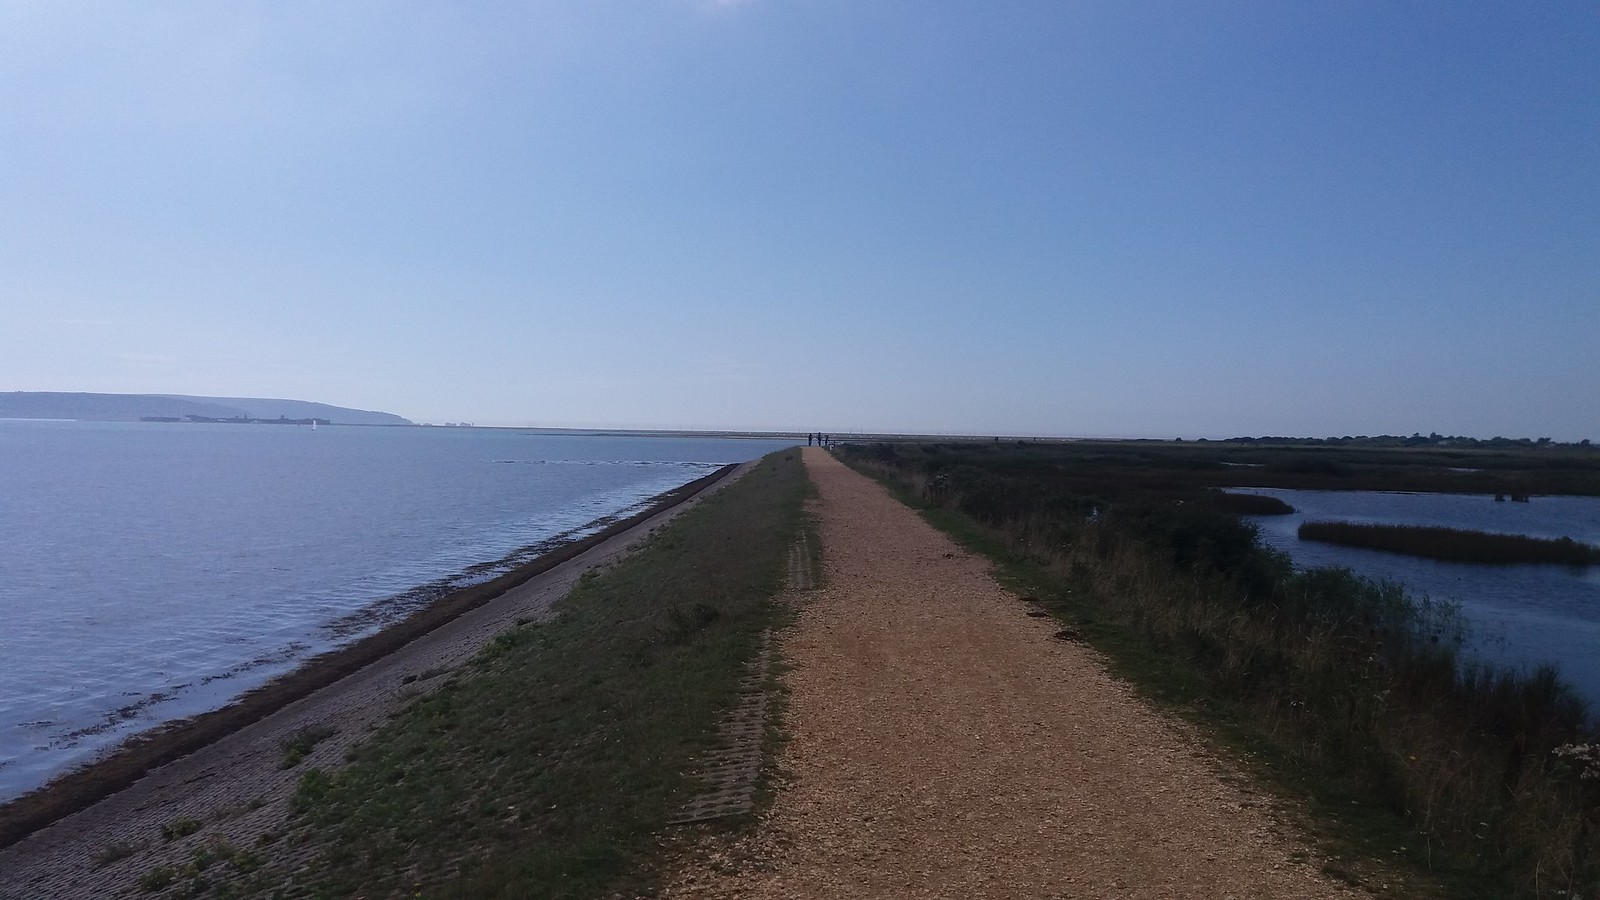 20160907_124037 Sea wall - Pennington marches, and the Solent